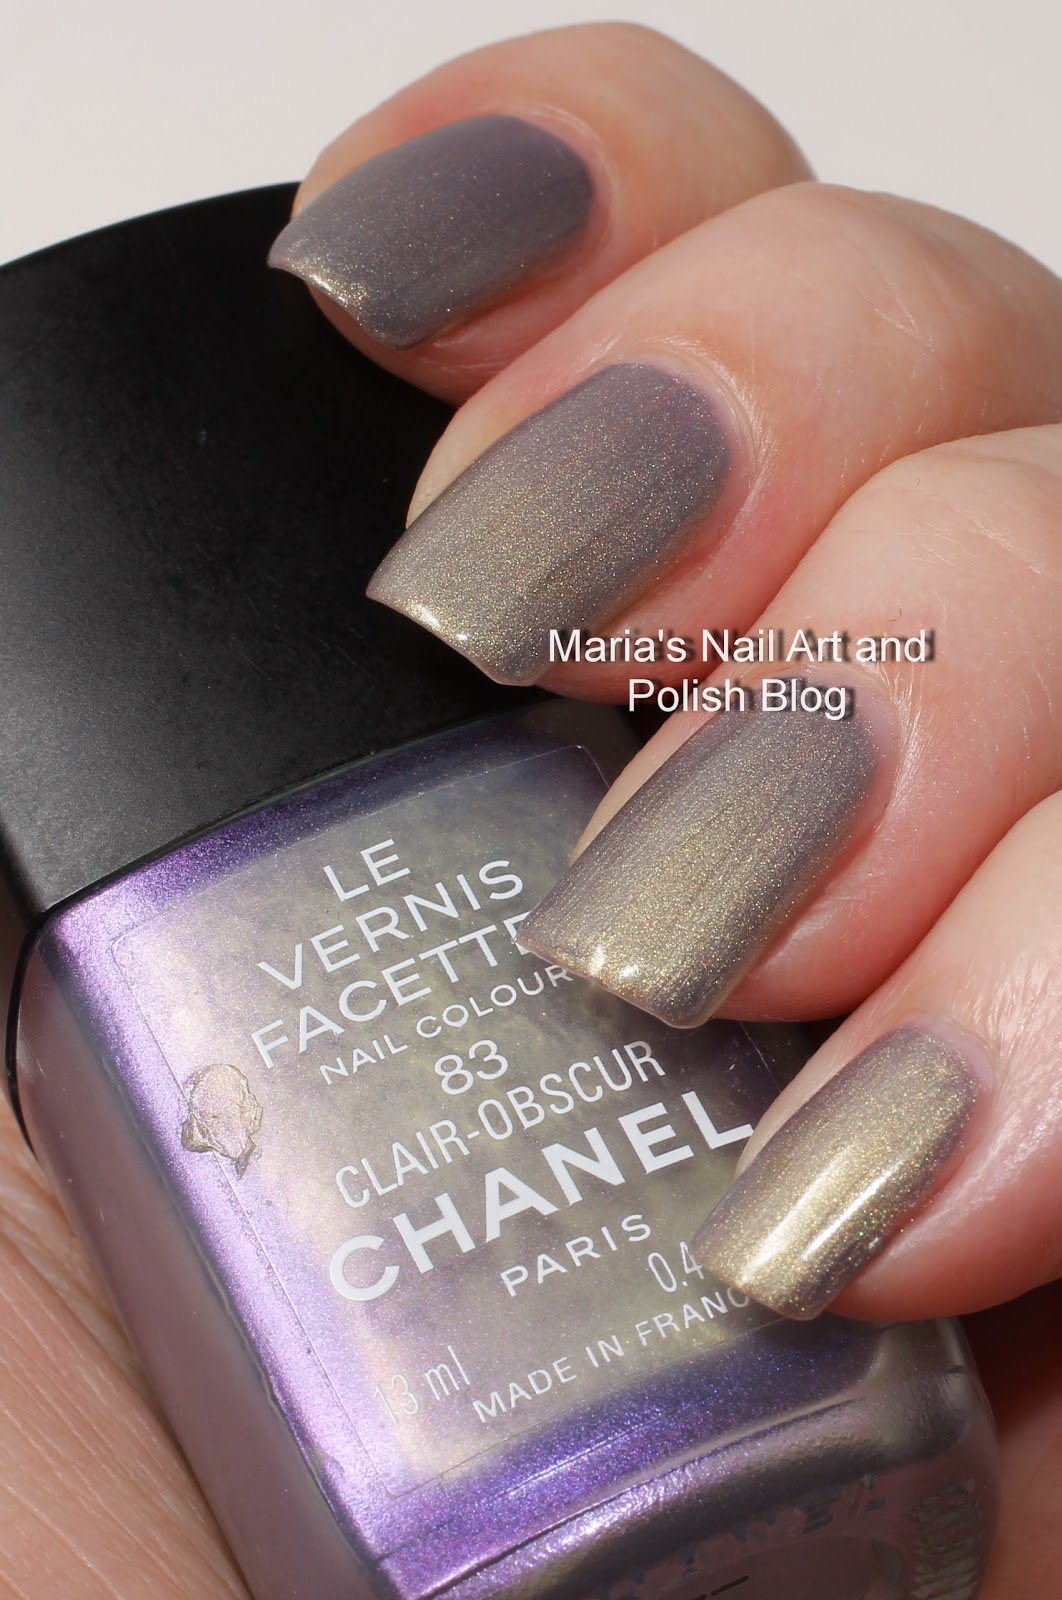 marias nail art and polish blog chanel claire obscur 83 les vernis facettes coll 2000. Black Bedroom Furniture Sets. Home Design Ideas